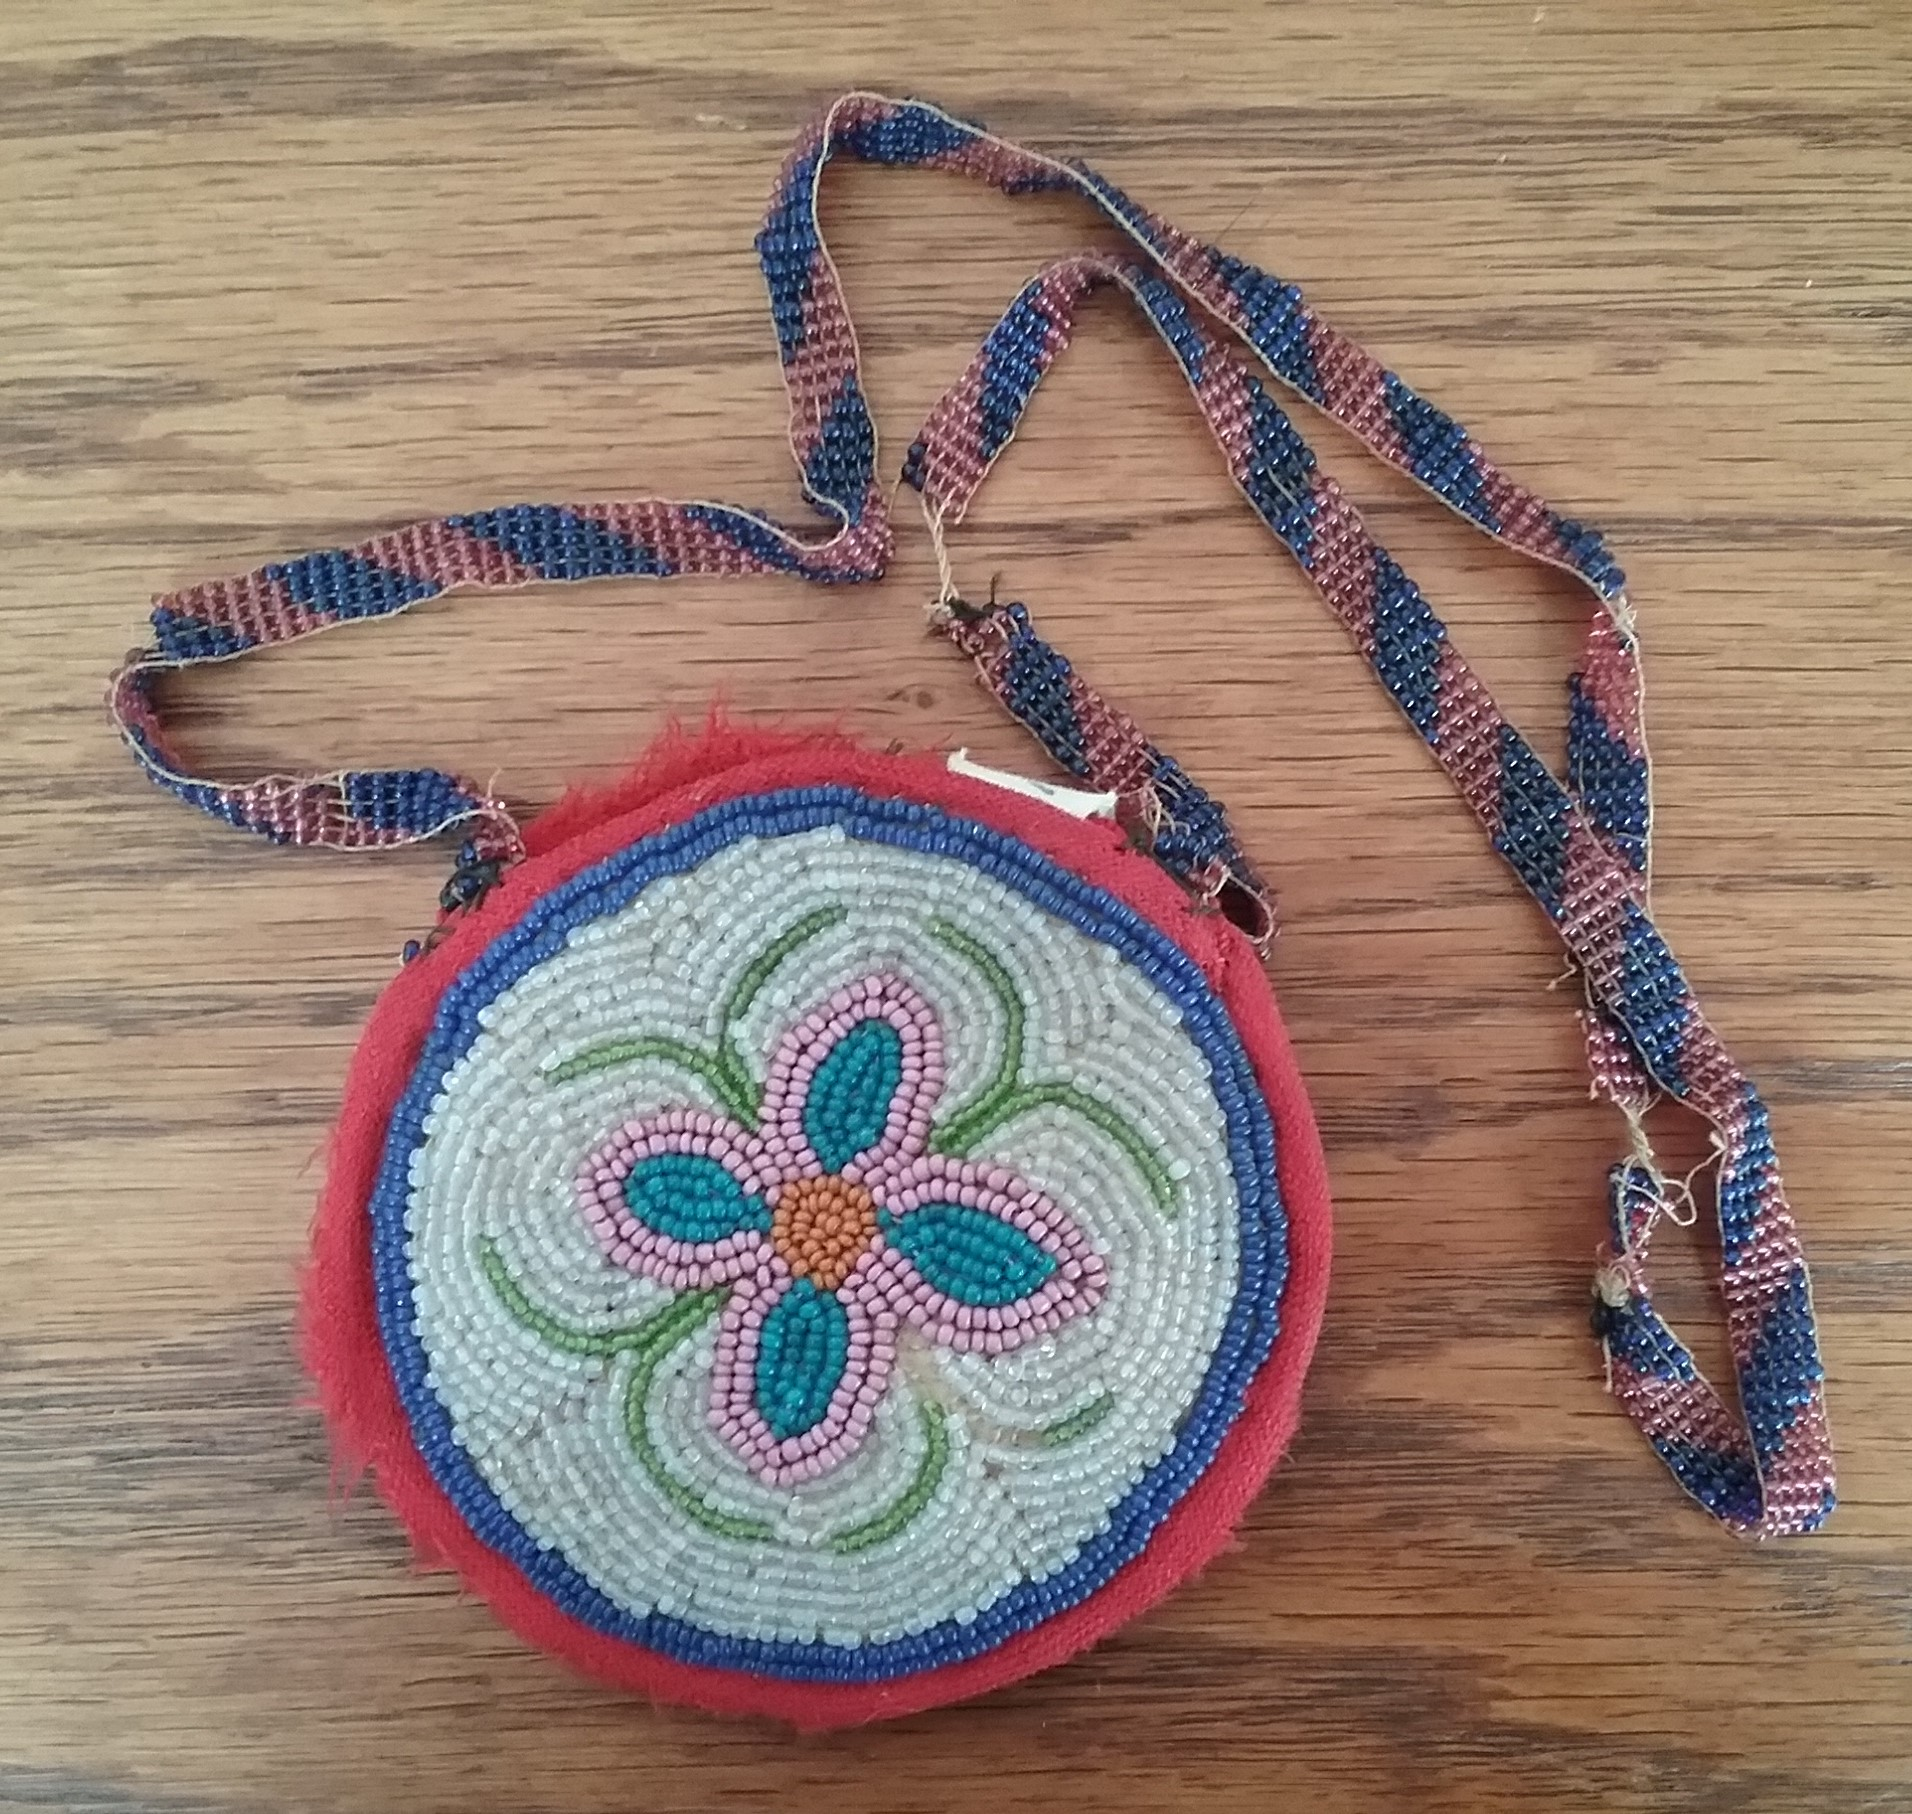 Coin Purse: Round beaded coin purse with beaded strap (first side featuring 4-petaled flower), donated by Viola & Frances Landmeier in 1970. MCHS collections, #1970.22.14.